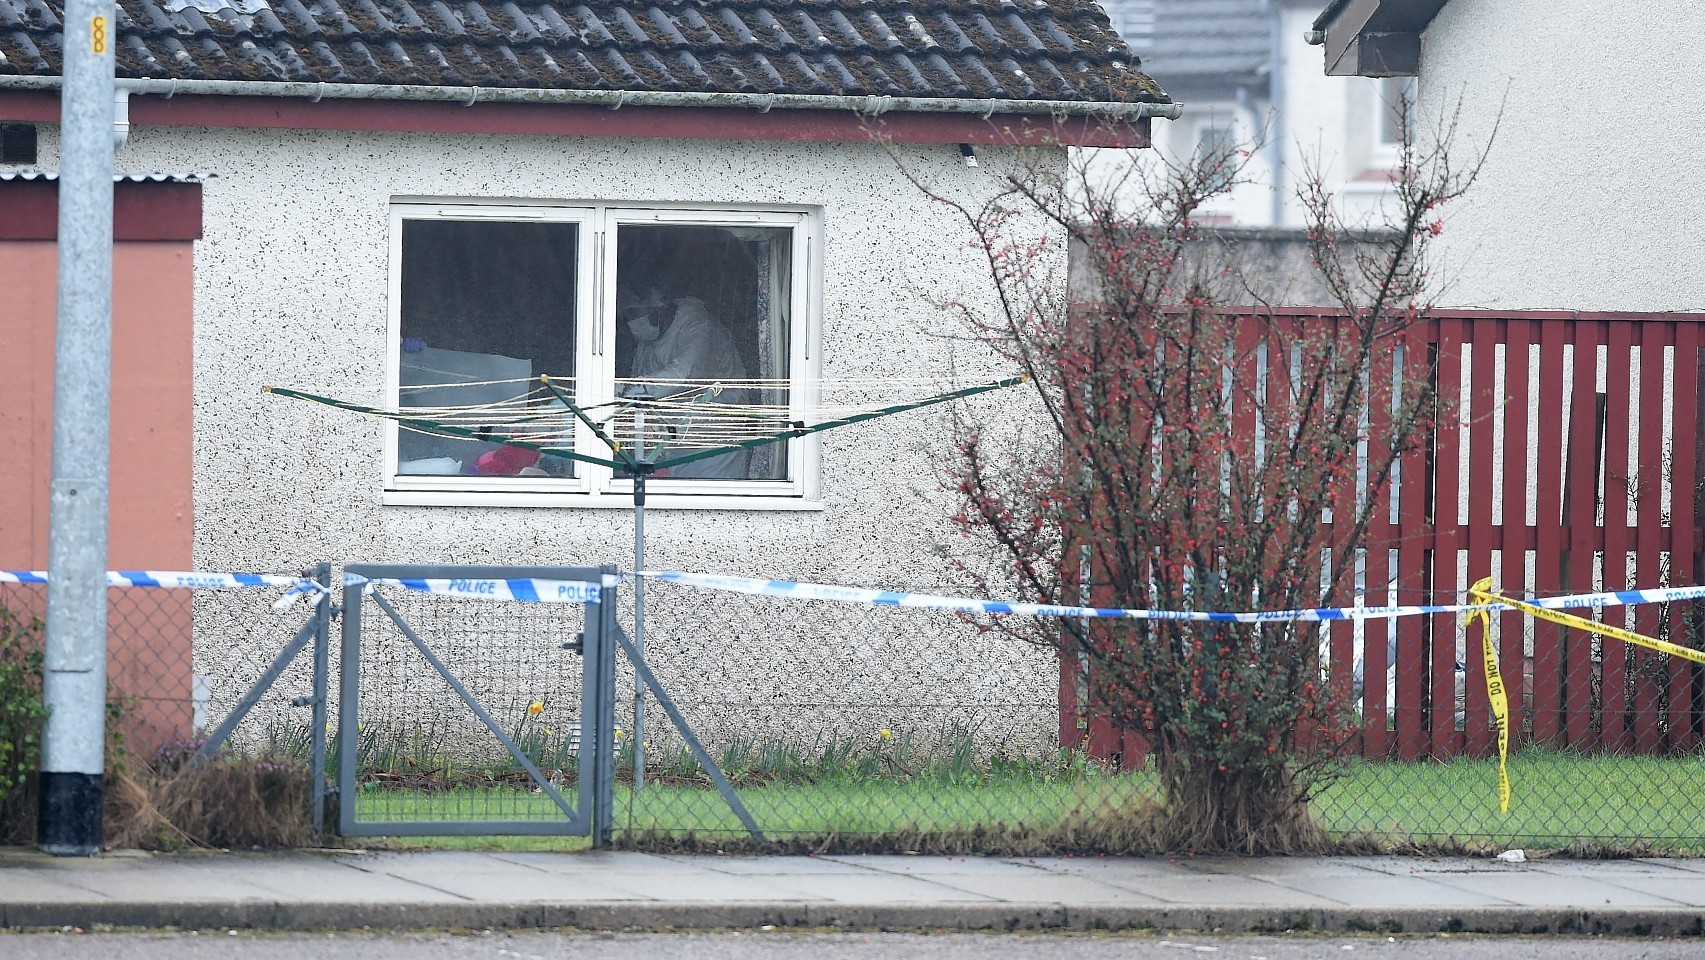 The scene at Kintail Court